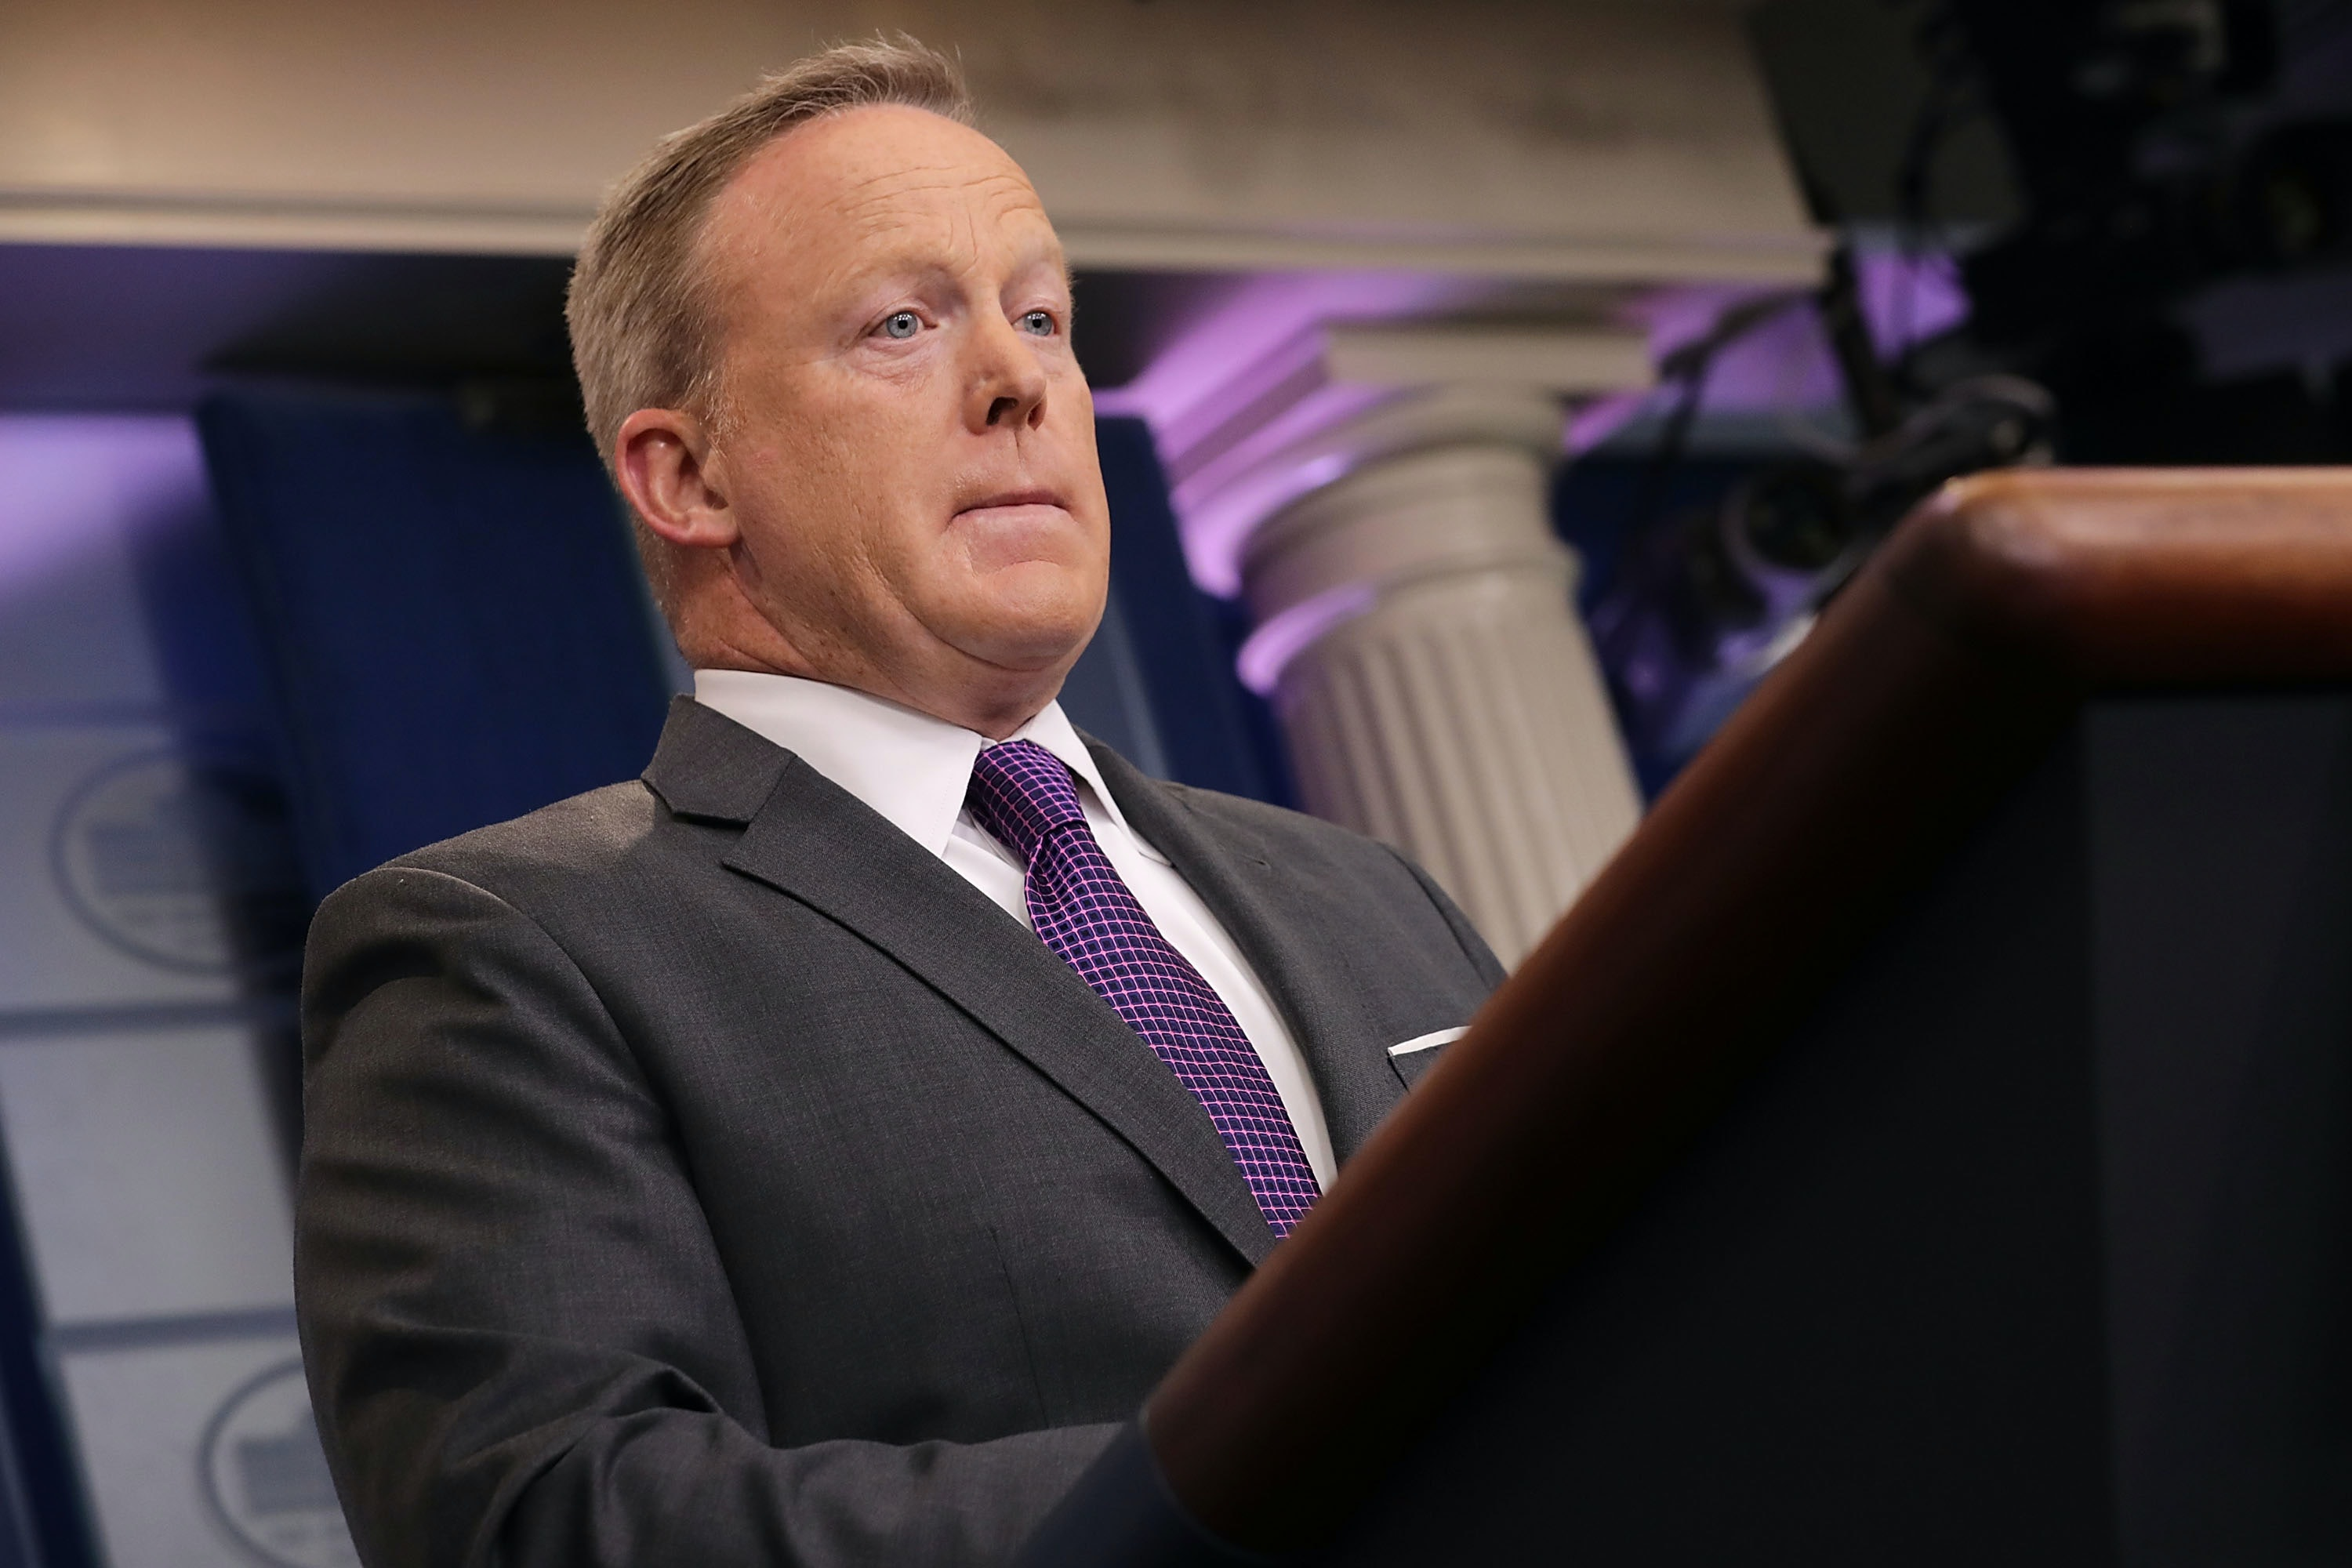 Funny Tweets & Memes About Sean Spicer's Resignation Are